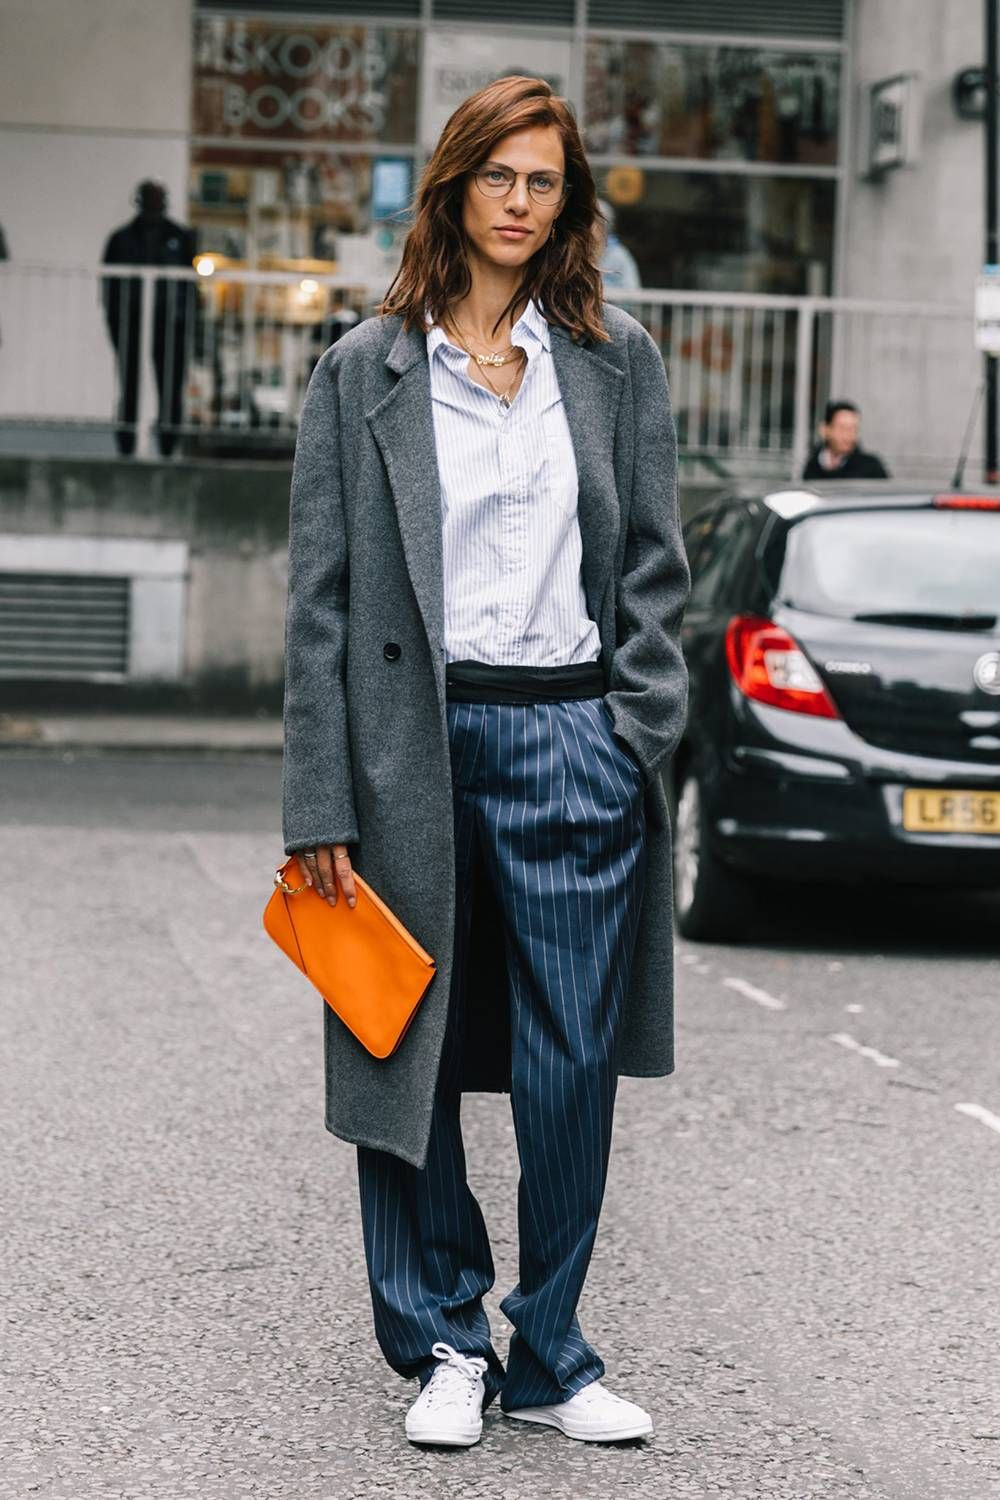 83ad99d99dd4 The Most Stylish Colors to Wear With Navy Blue in 2019 | Streetstyle ...